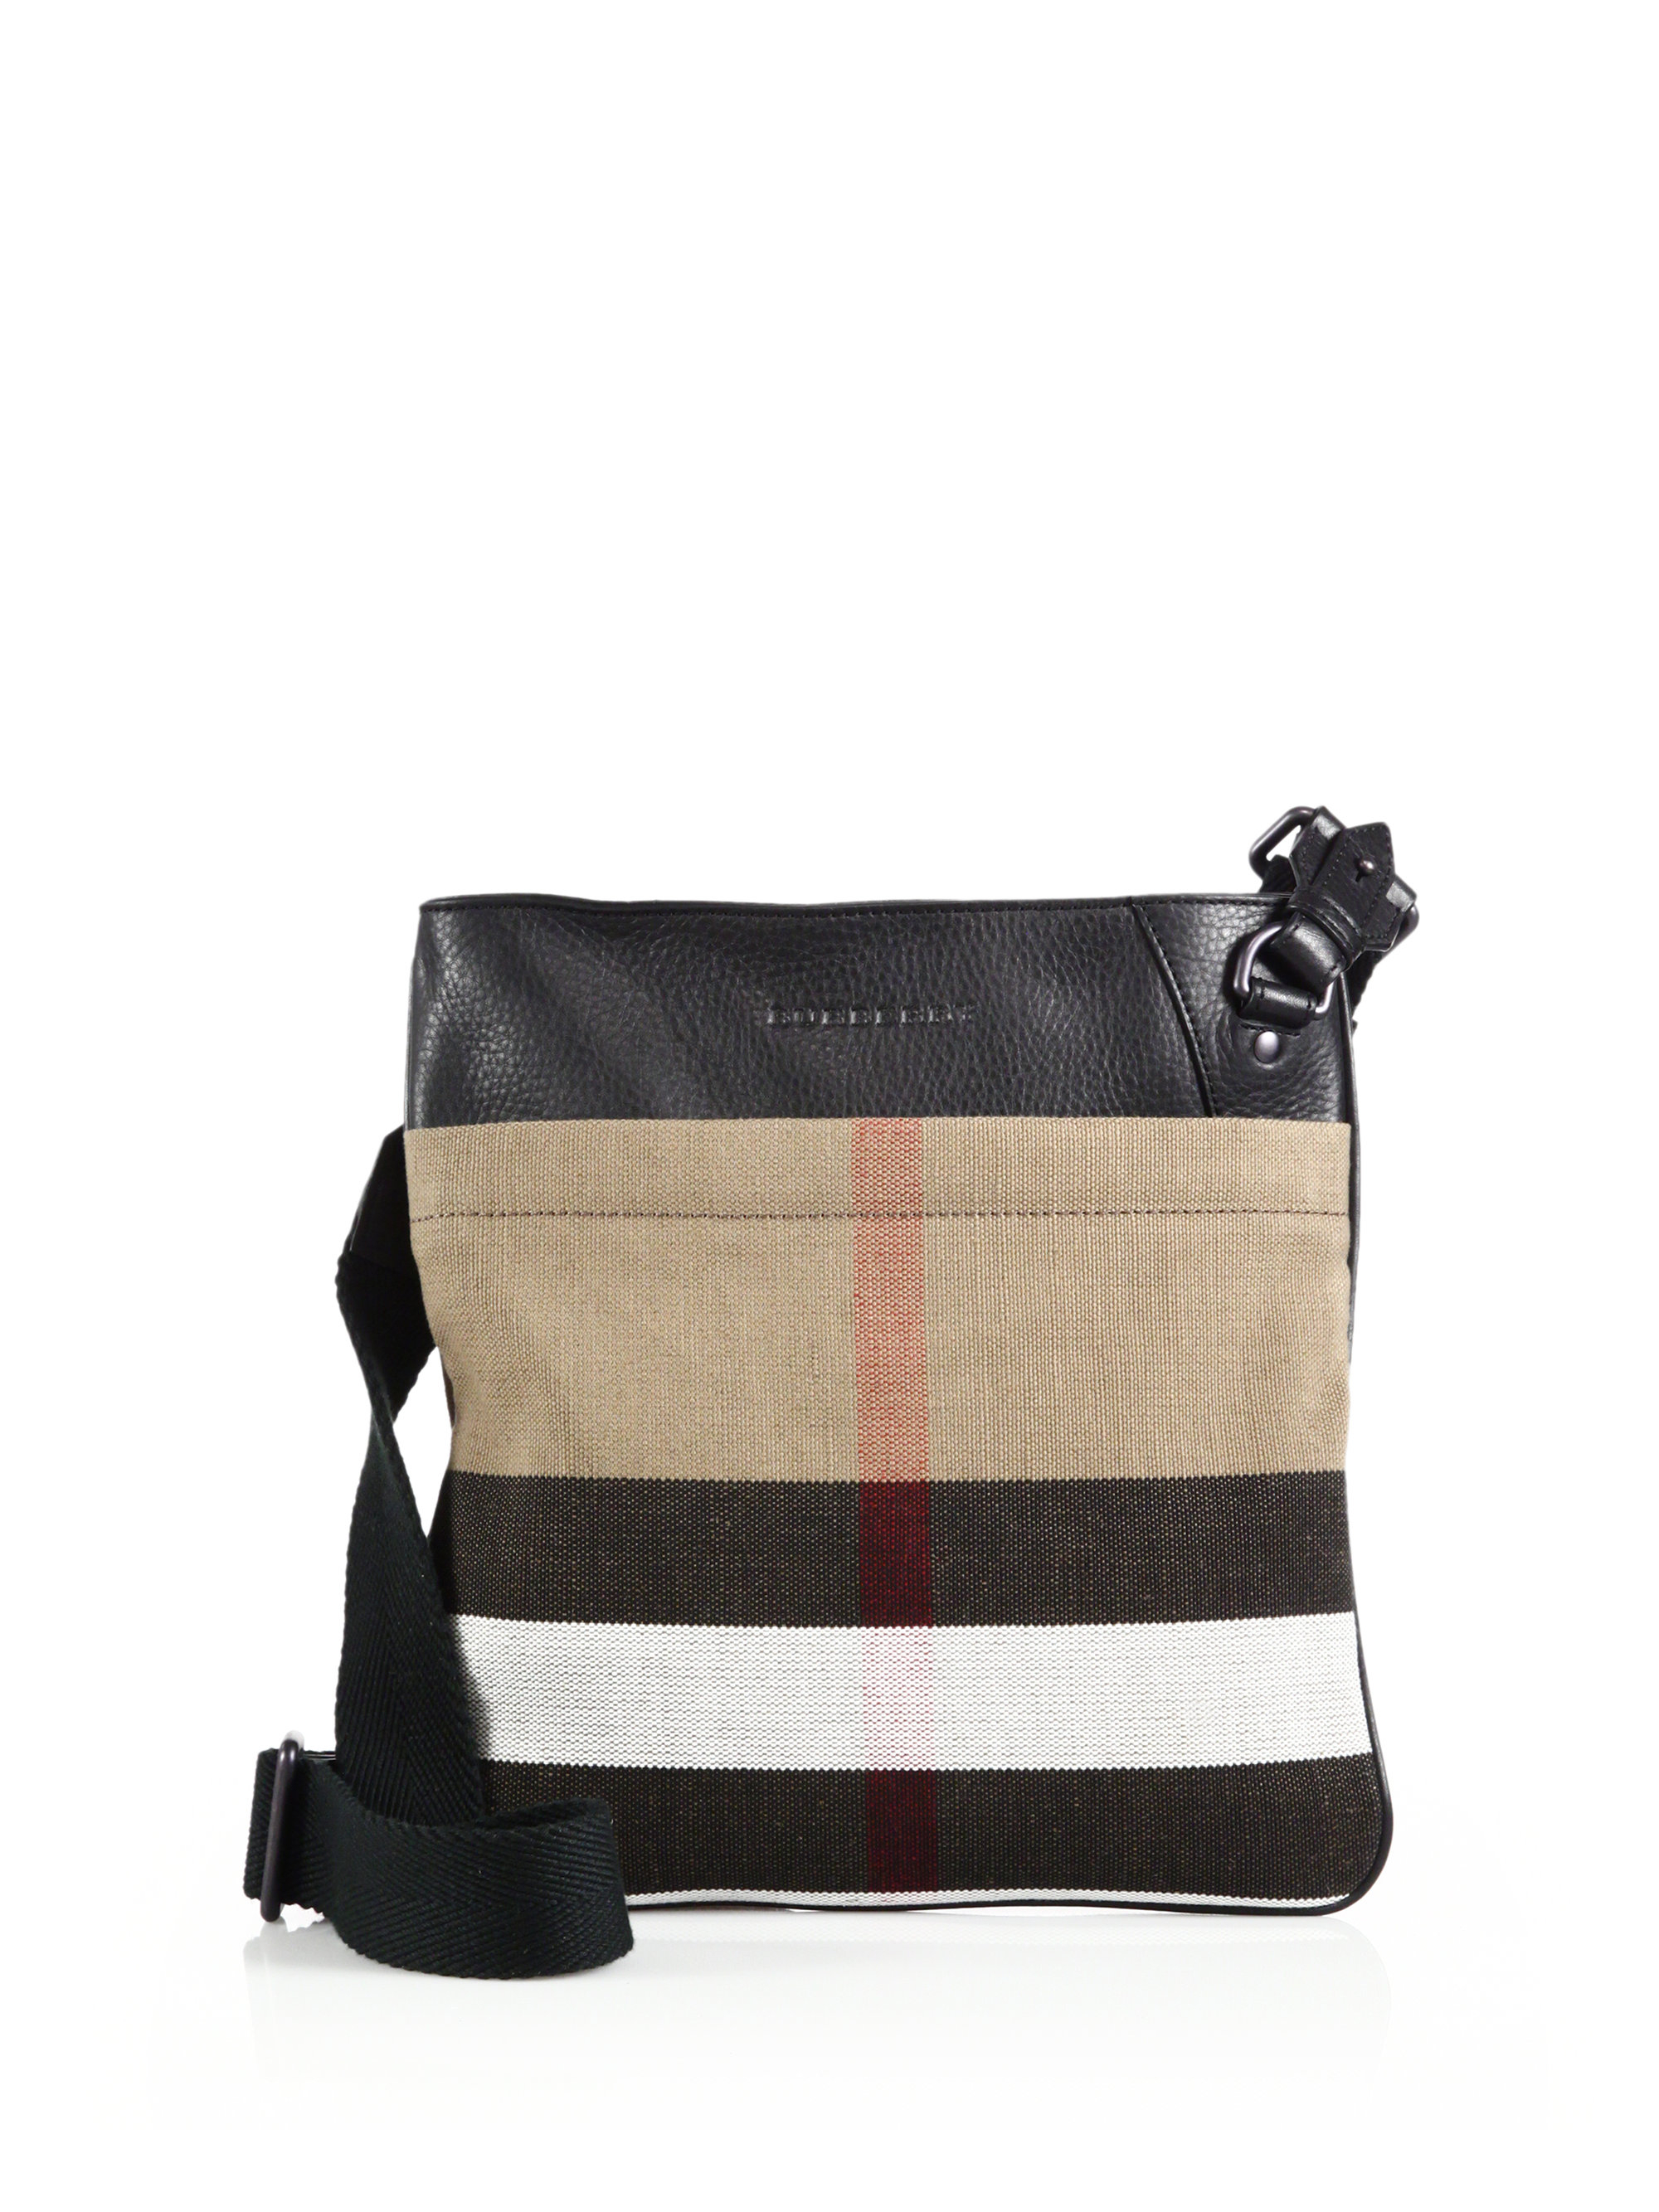 c20c45c35aad Lyst - Burberry Ainsley Crossbody Bag for Men